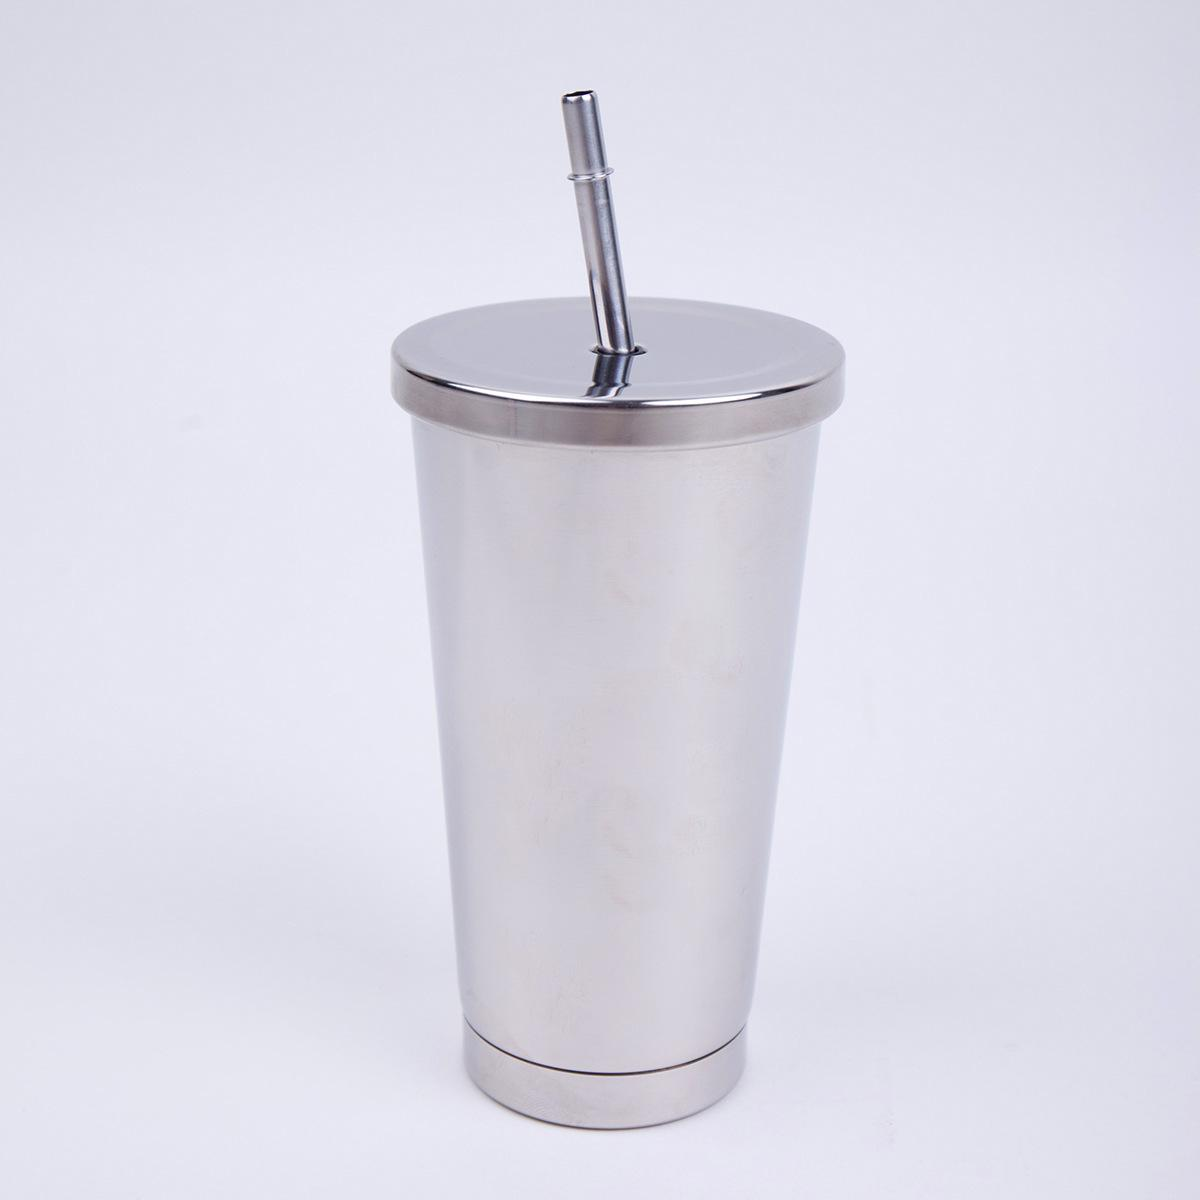 5543dd4d6e2 2019 16 Oz Stainless Steel Double Walled Insulated Tumbler With Lid And  Straw From Kyouny, $30.39 | DHgate.Com